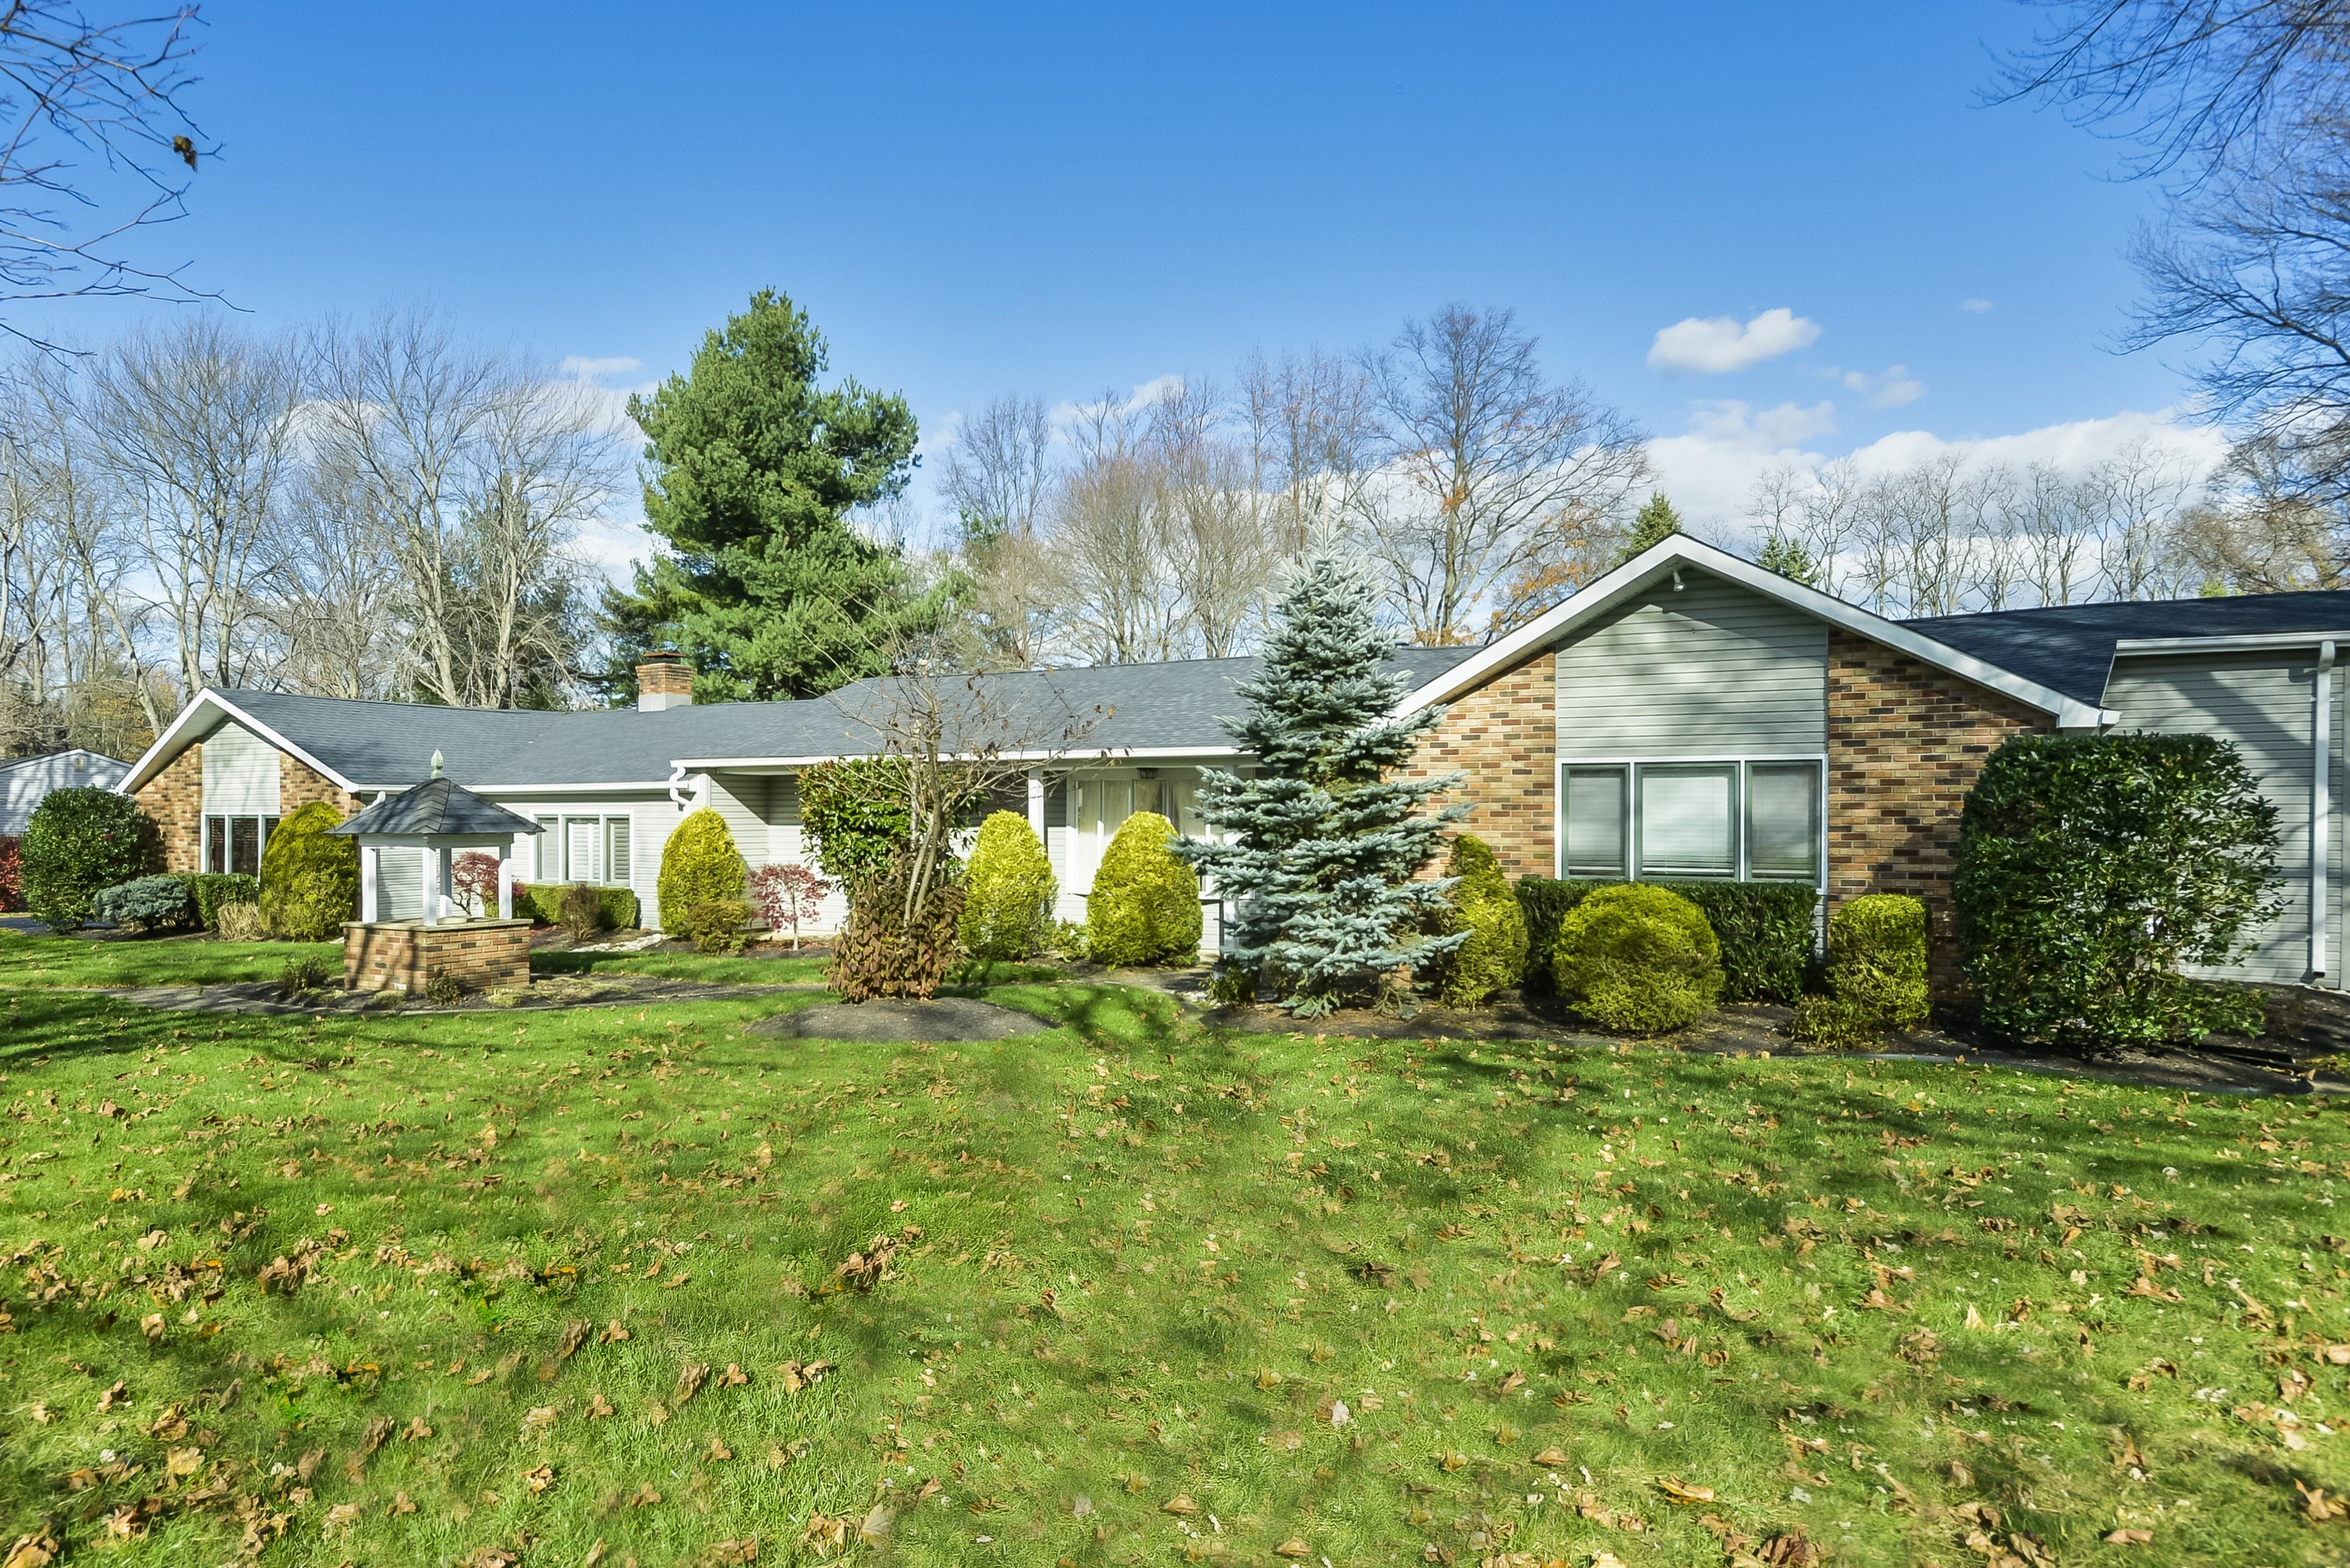 United States Middletown Sprawling Ranch For Sale On